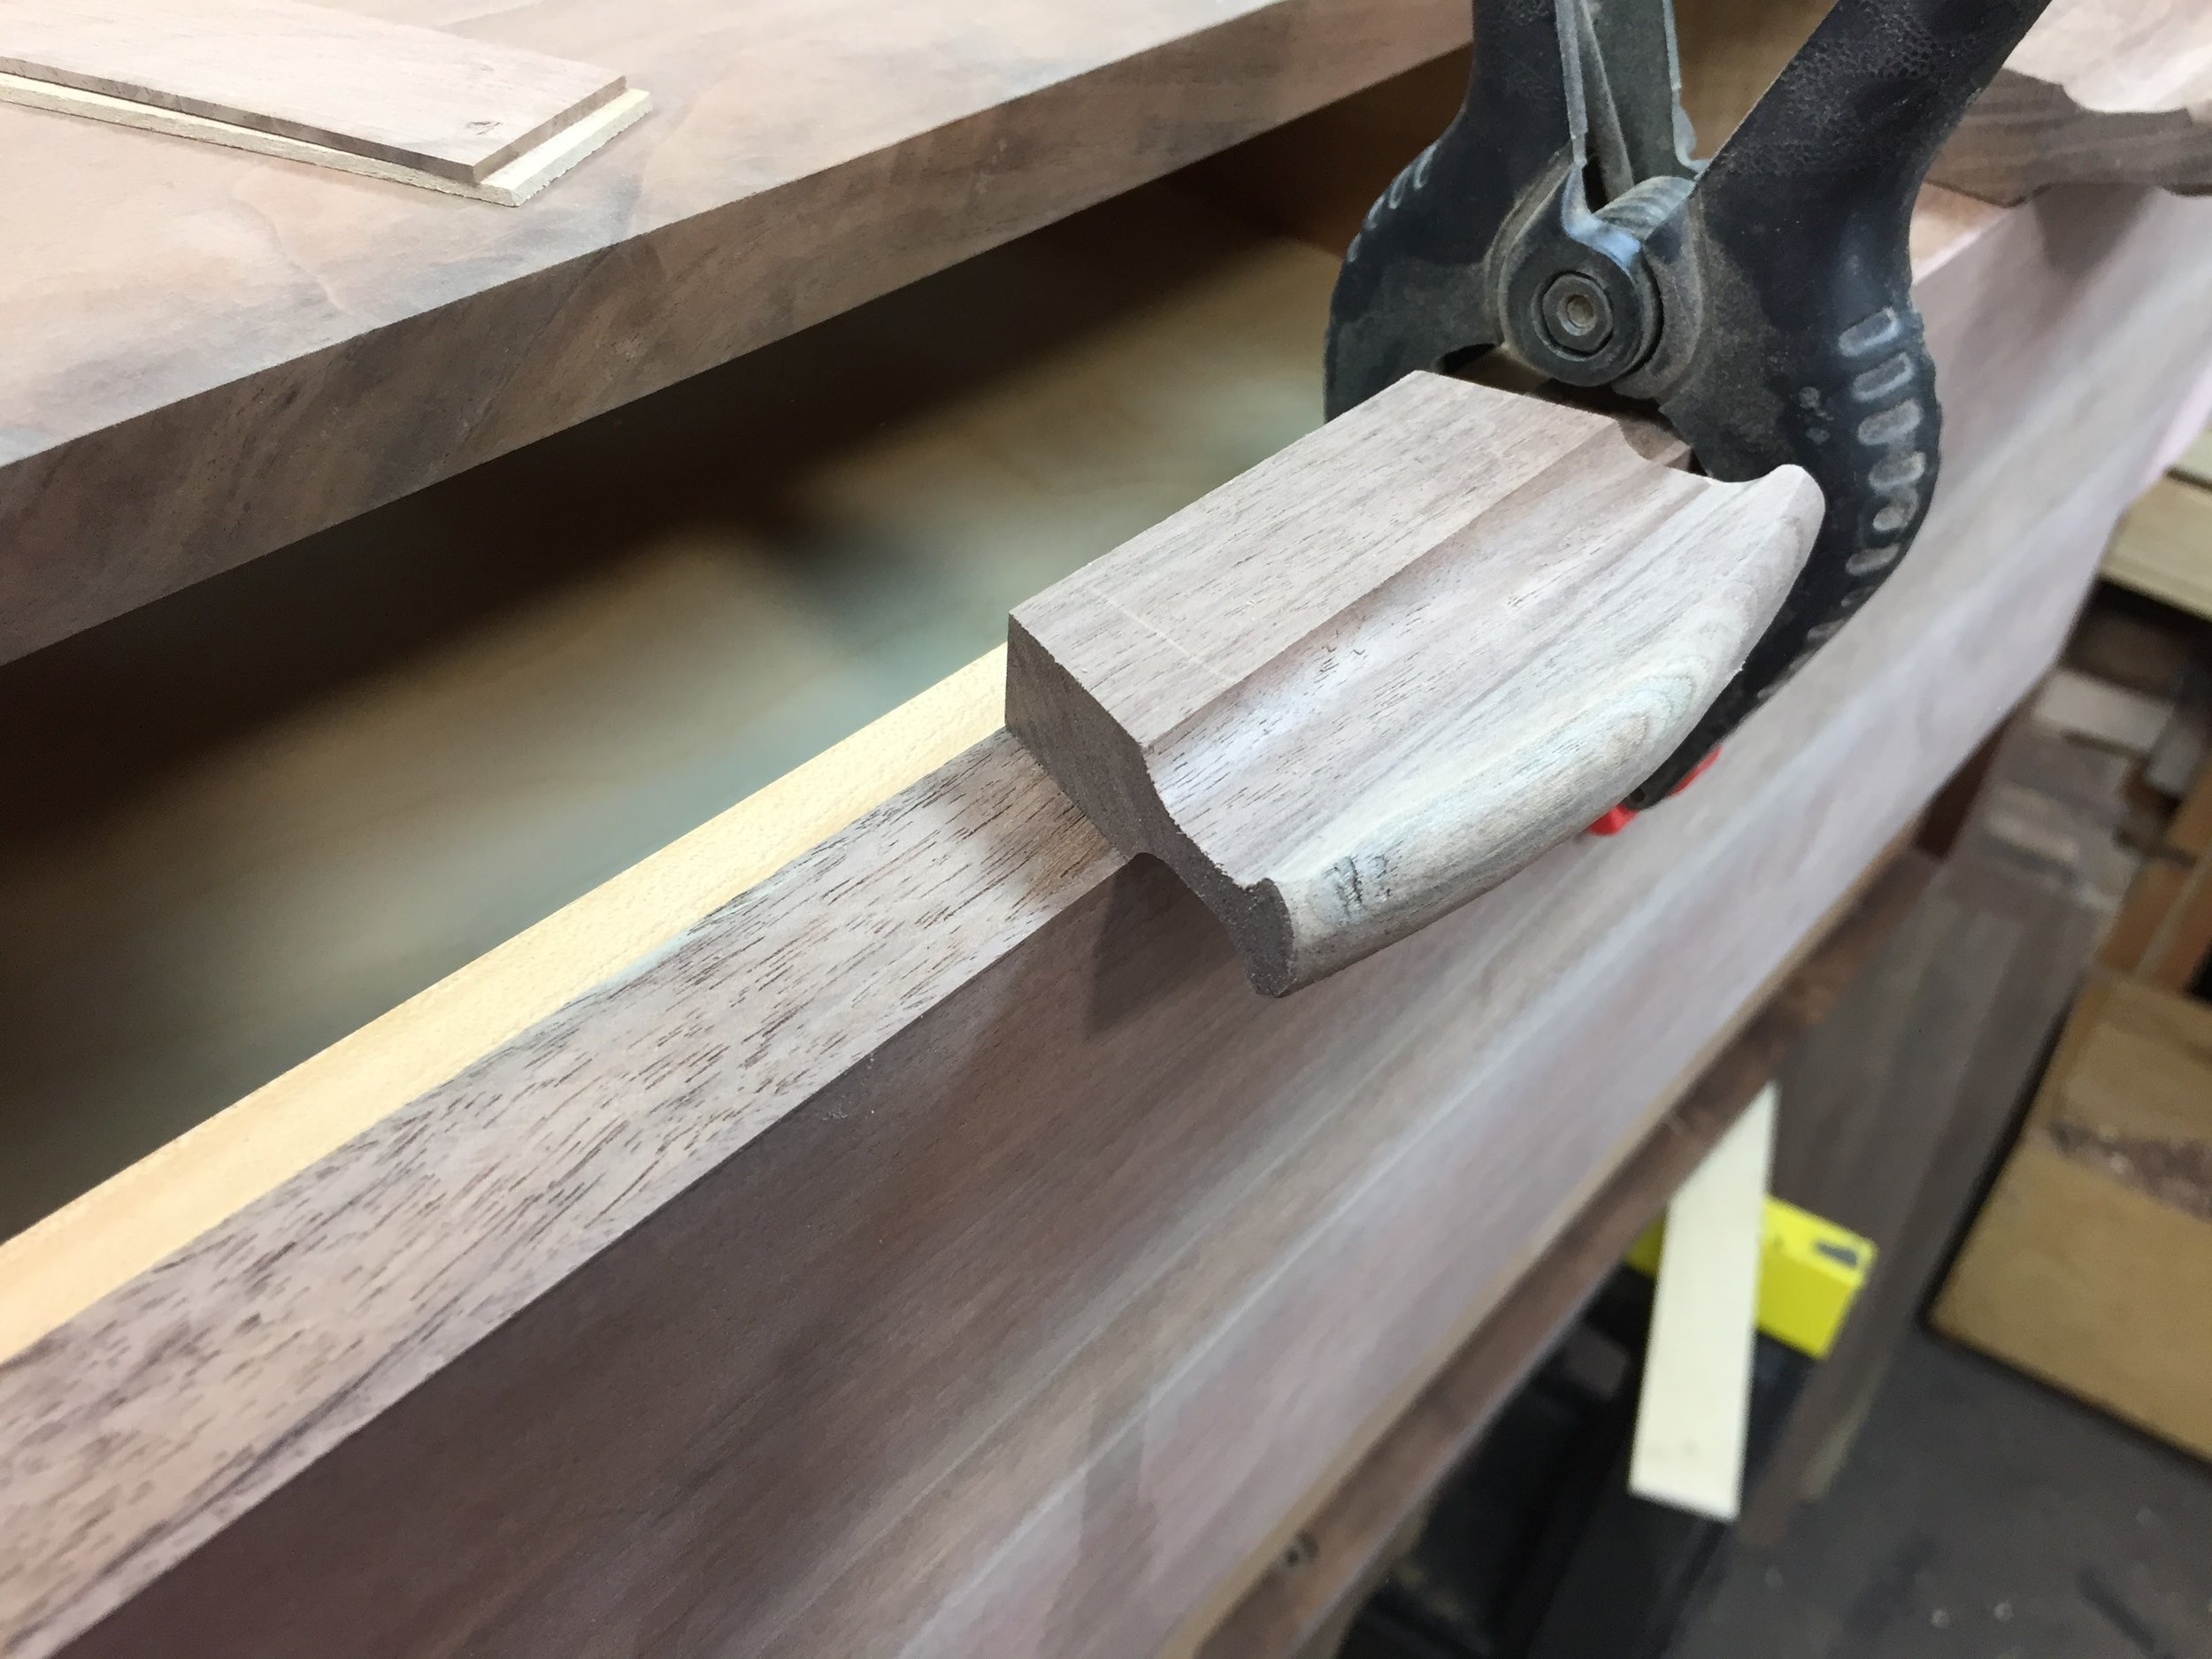 Rough shape positioned on the top edge of a drawer front